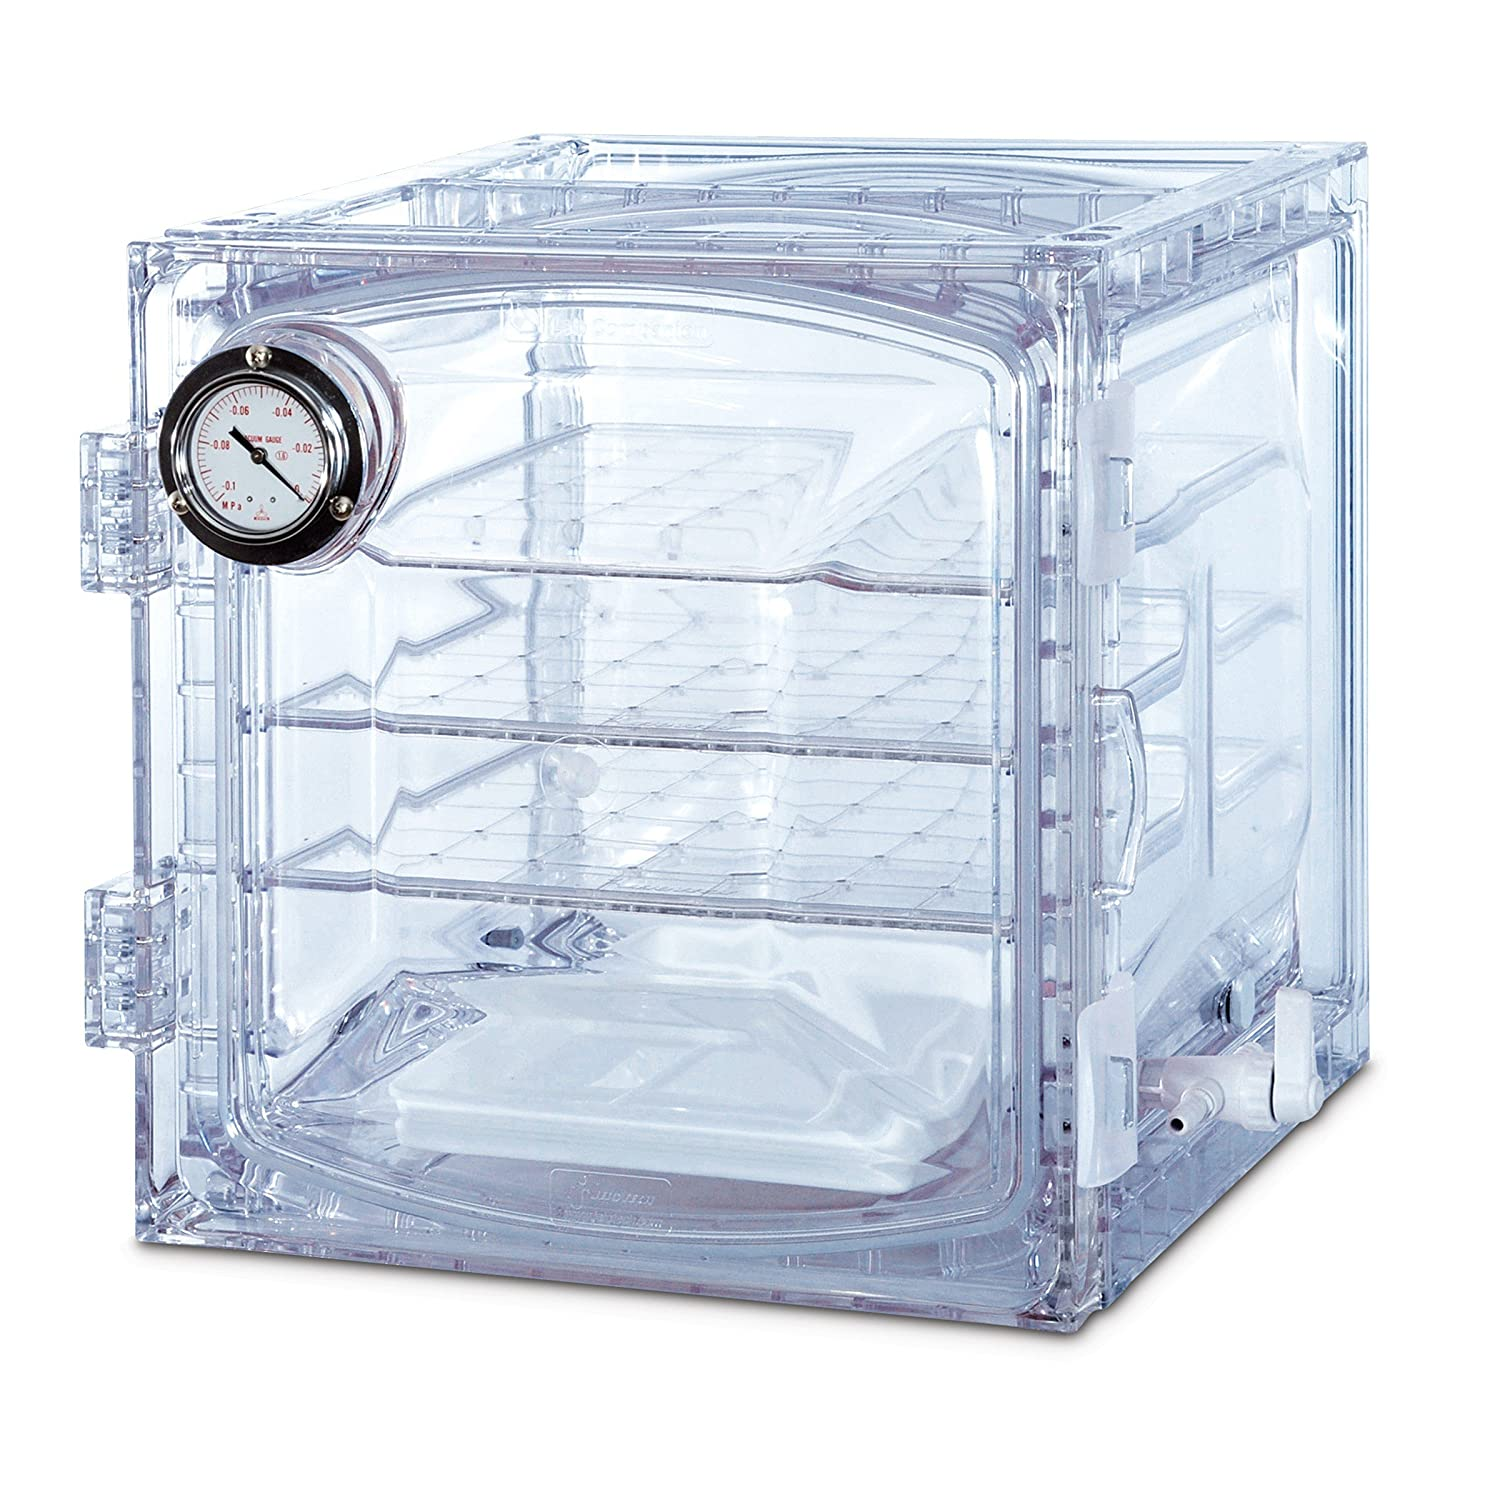 Bel-Art Lab Companion Clear Polycarbonate Cabinet Style Vacuum Desiccator; 35 Liter (F42400-4011) 91RZNVVqtlL